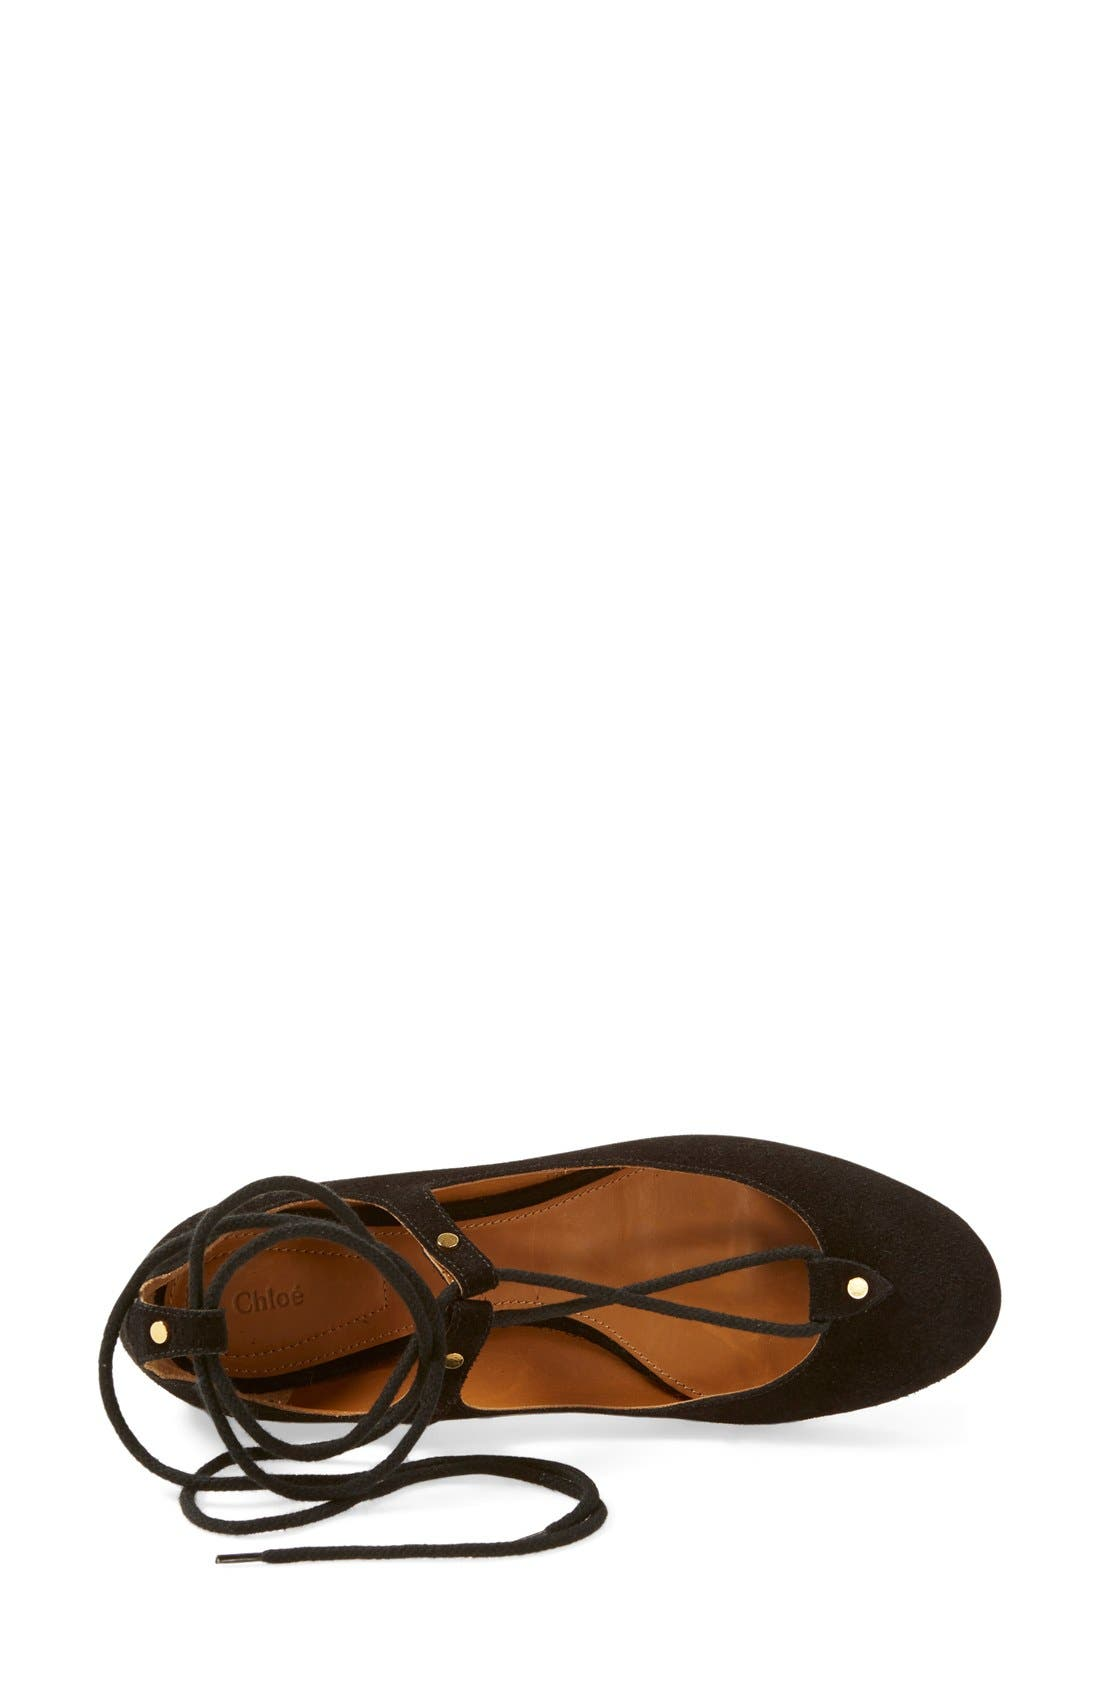 Alternate Image 3  - Chloé 'Foster' Lace-Up Ballet Flat (Women)